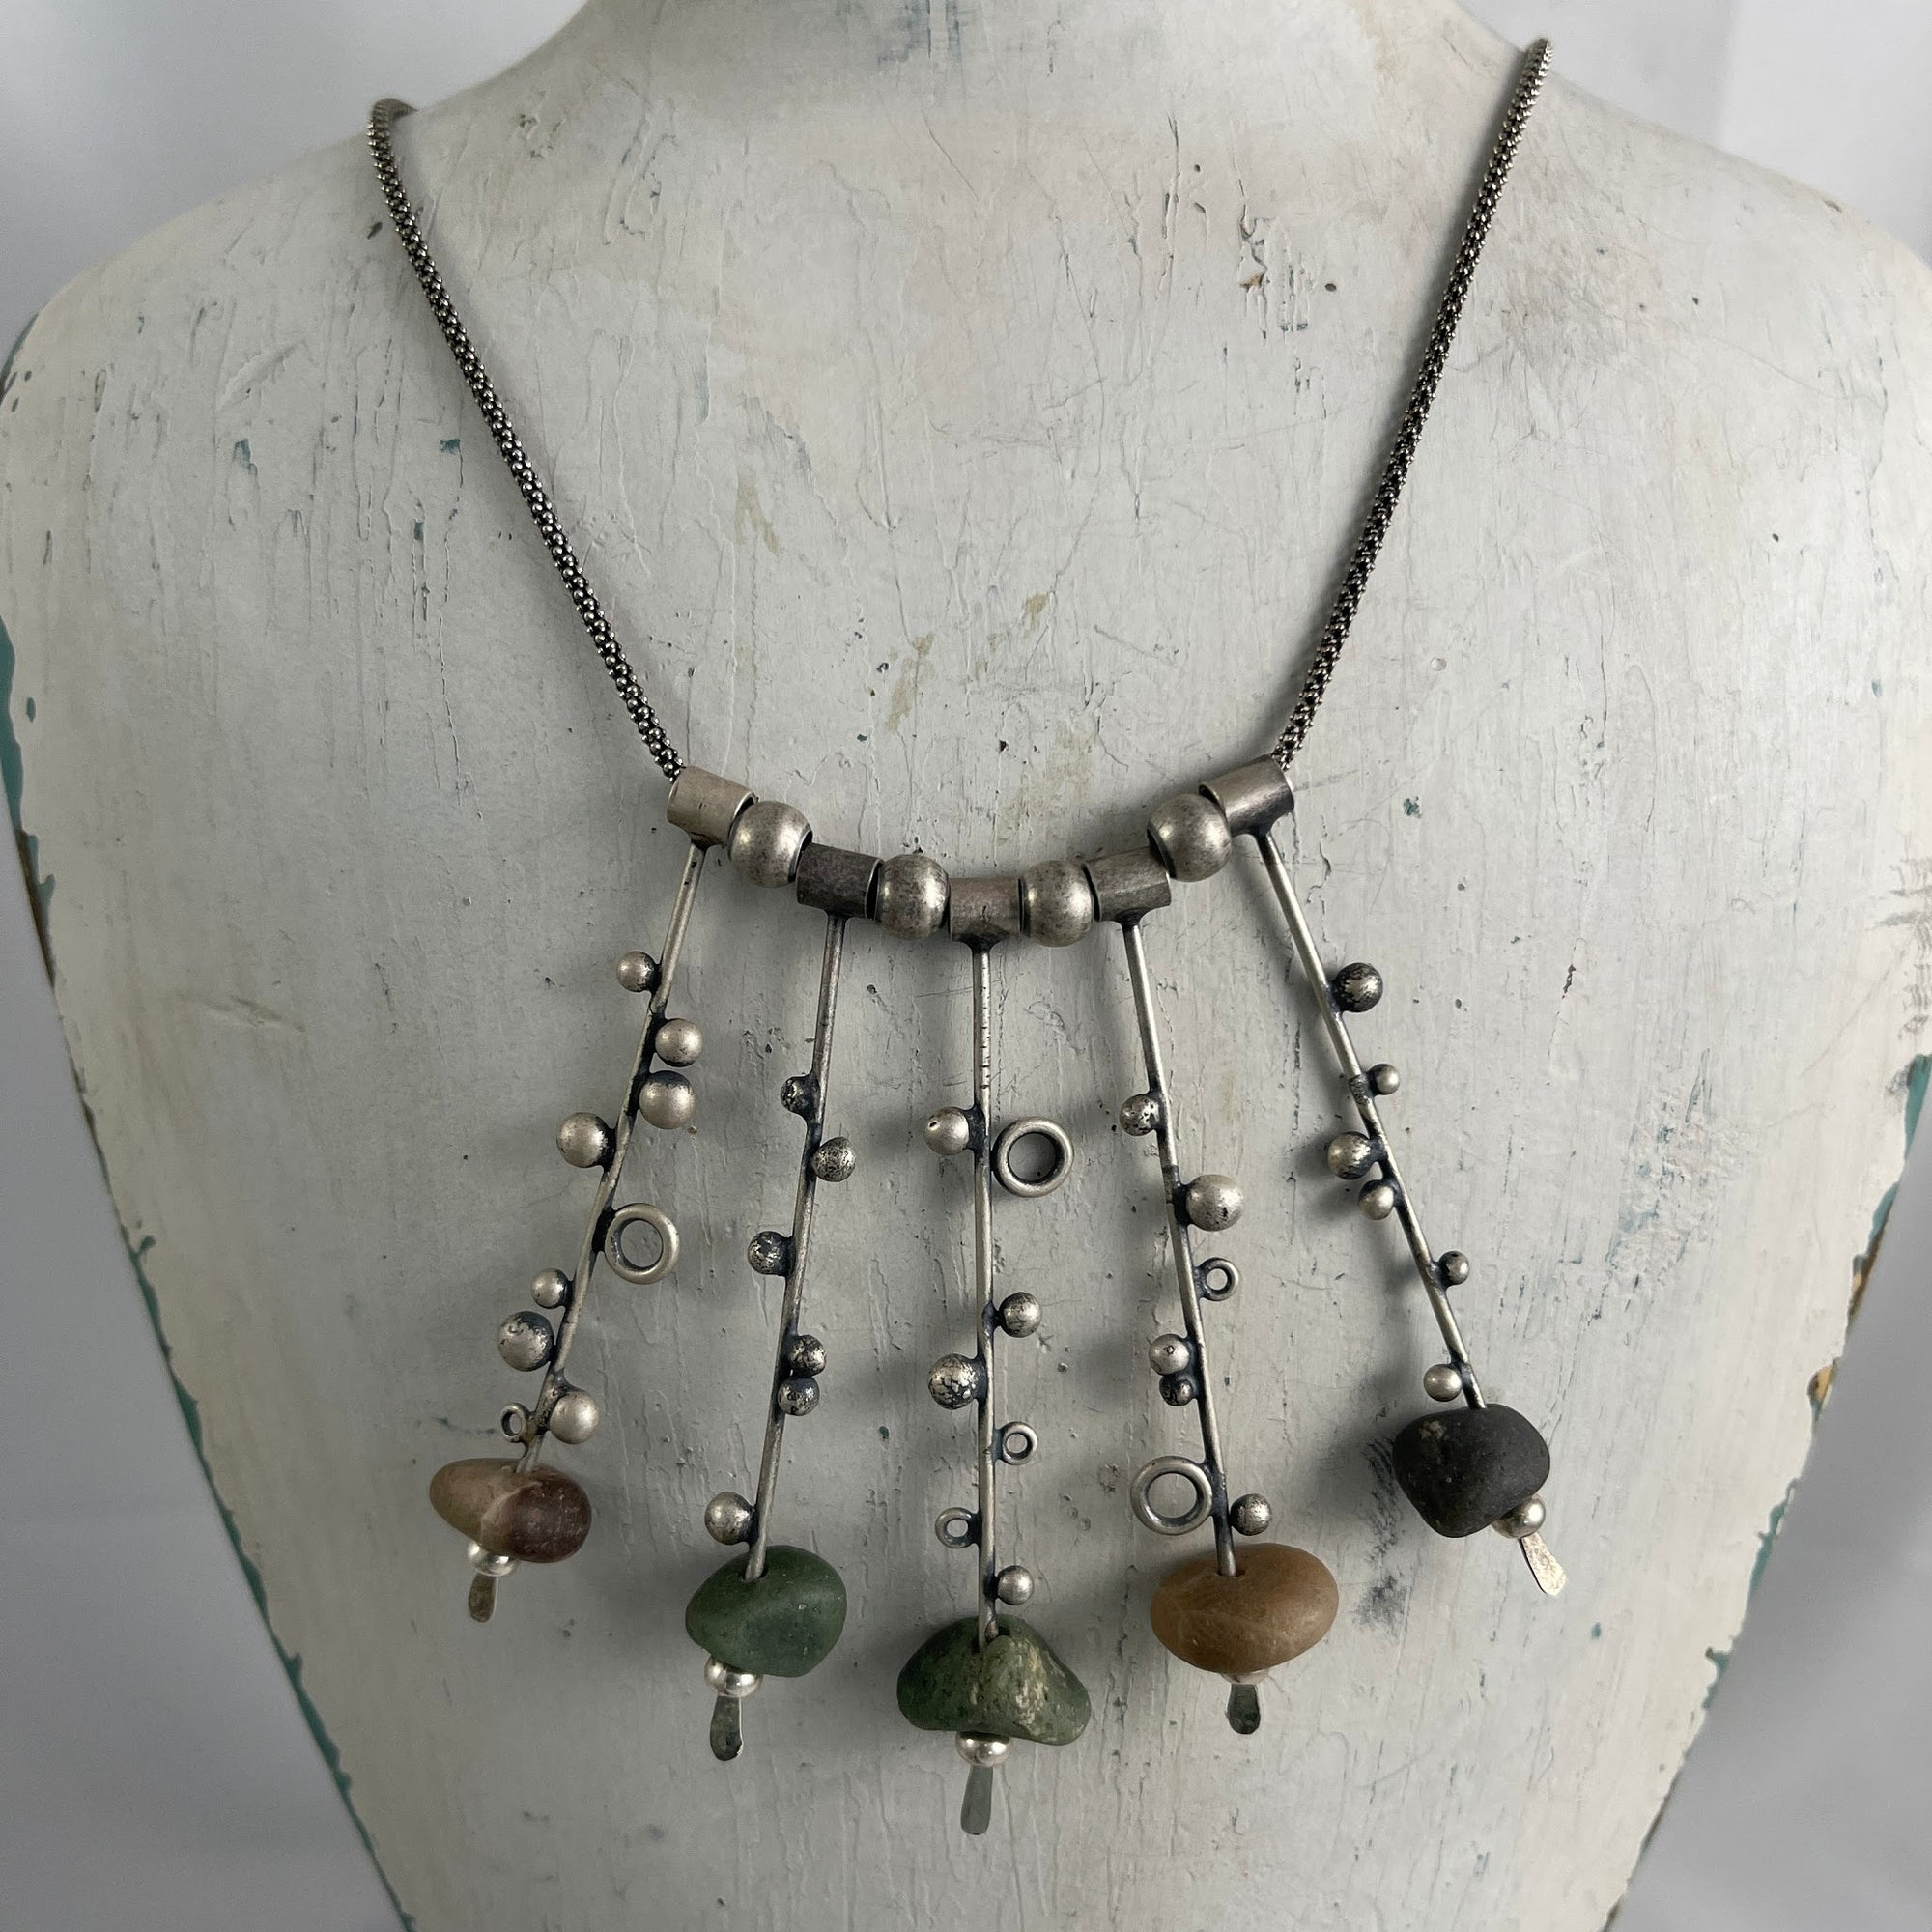 Leland Blue and Petoskey Stone Stick Necklace